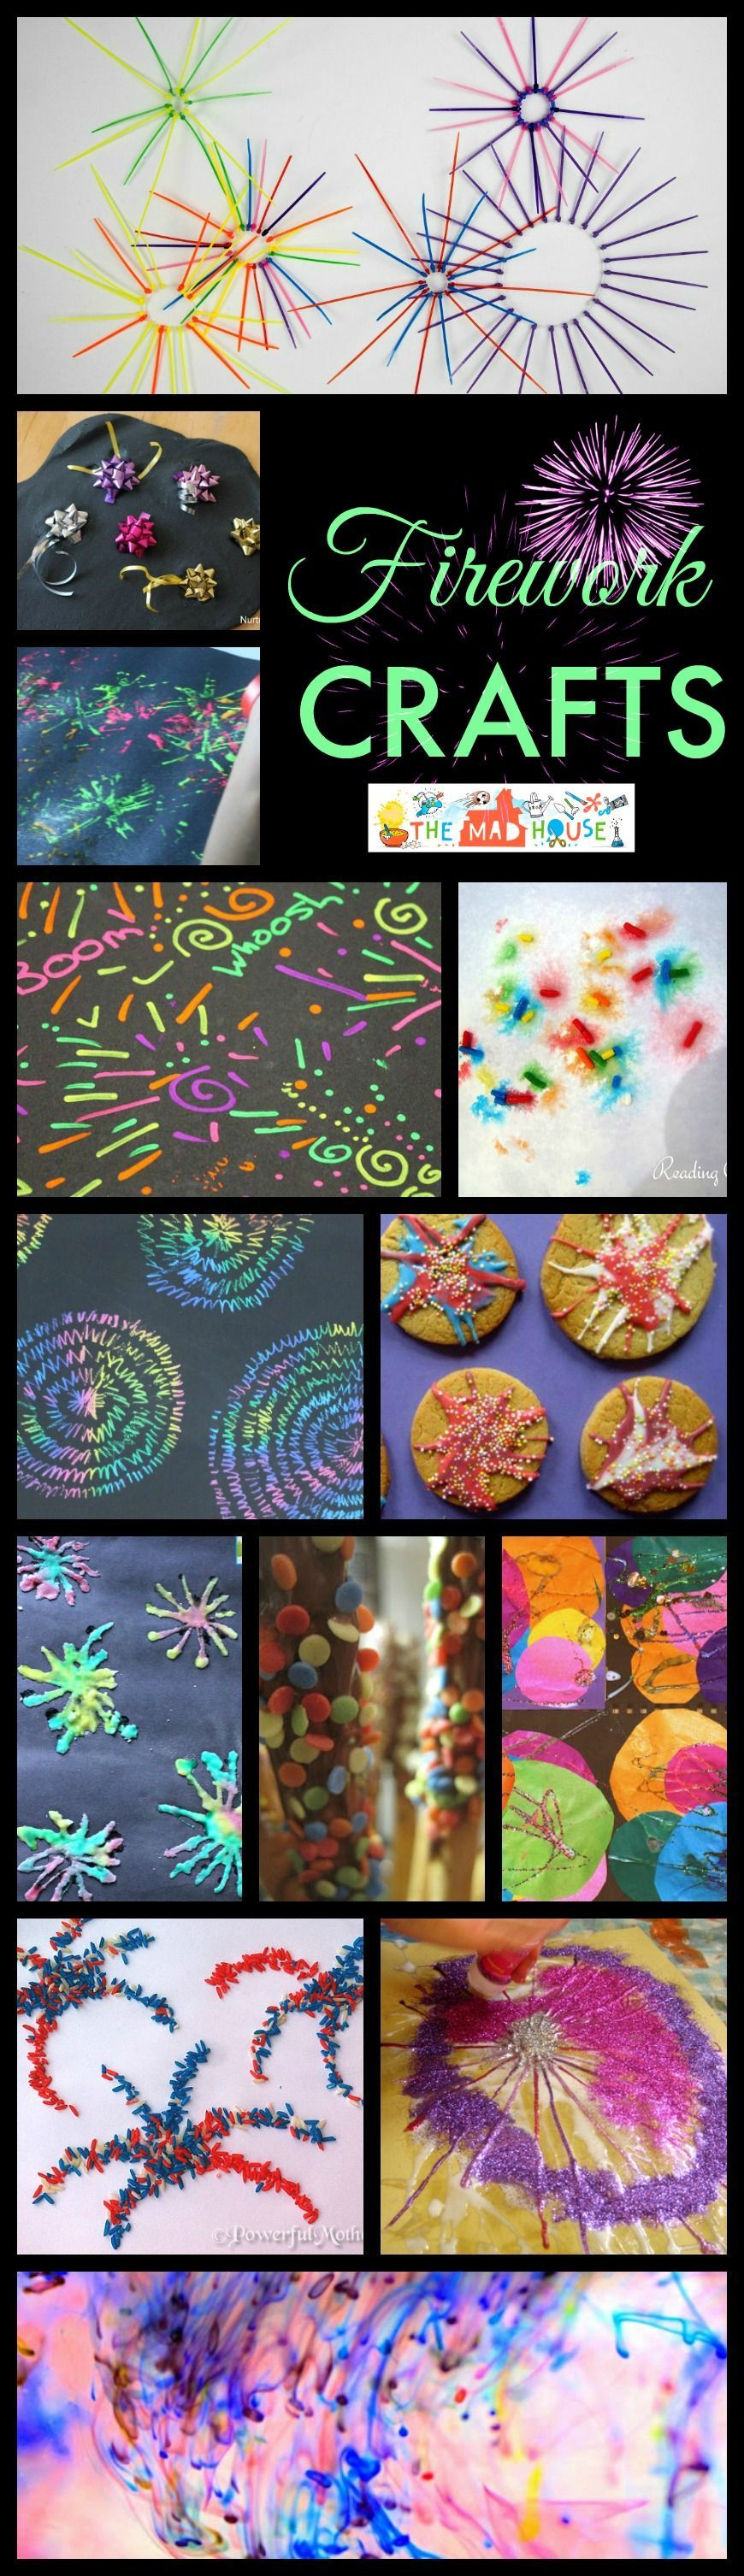 20 Firework crafts and treats roundup #fireworkcraftsforkids Firework crafts and treats roundup, perfect for celebrating Guy Fawkes, Diwali and 4th July.  Make your kids crafts go with a BANG with these superb firework crafts and treats. #fireworkcraftsforkids